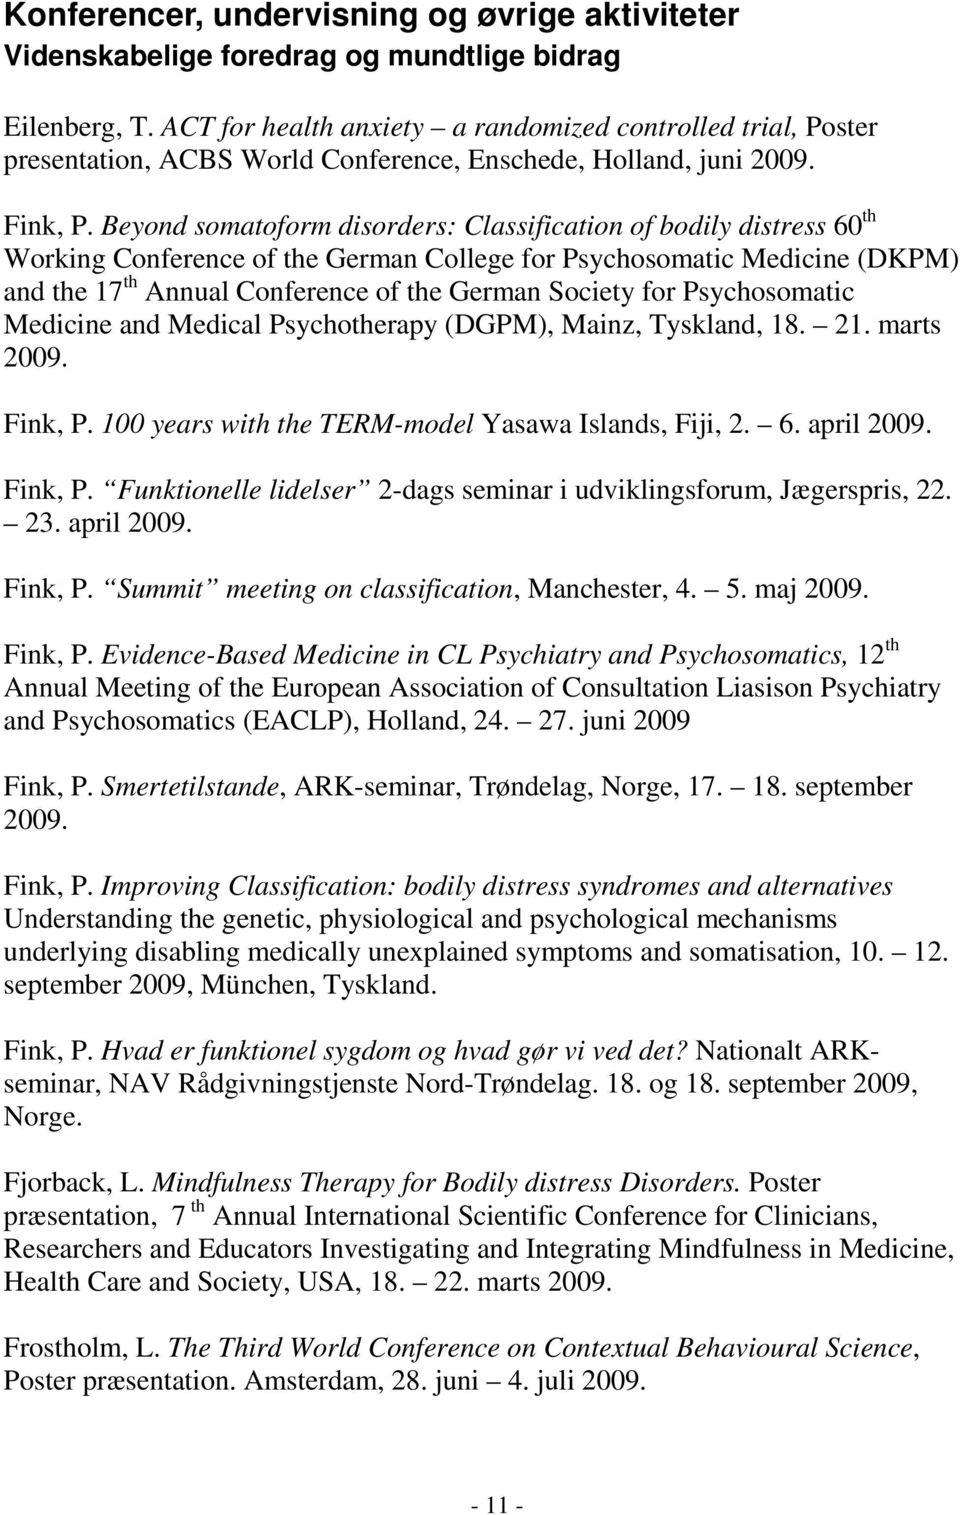 Beyond somatoform disorders: Classification of bodily distress 60 th Working Conference of the German College for Psychosomatic Medicine (DKPM) and the 17 th Annual Conference of the German Society